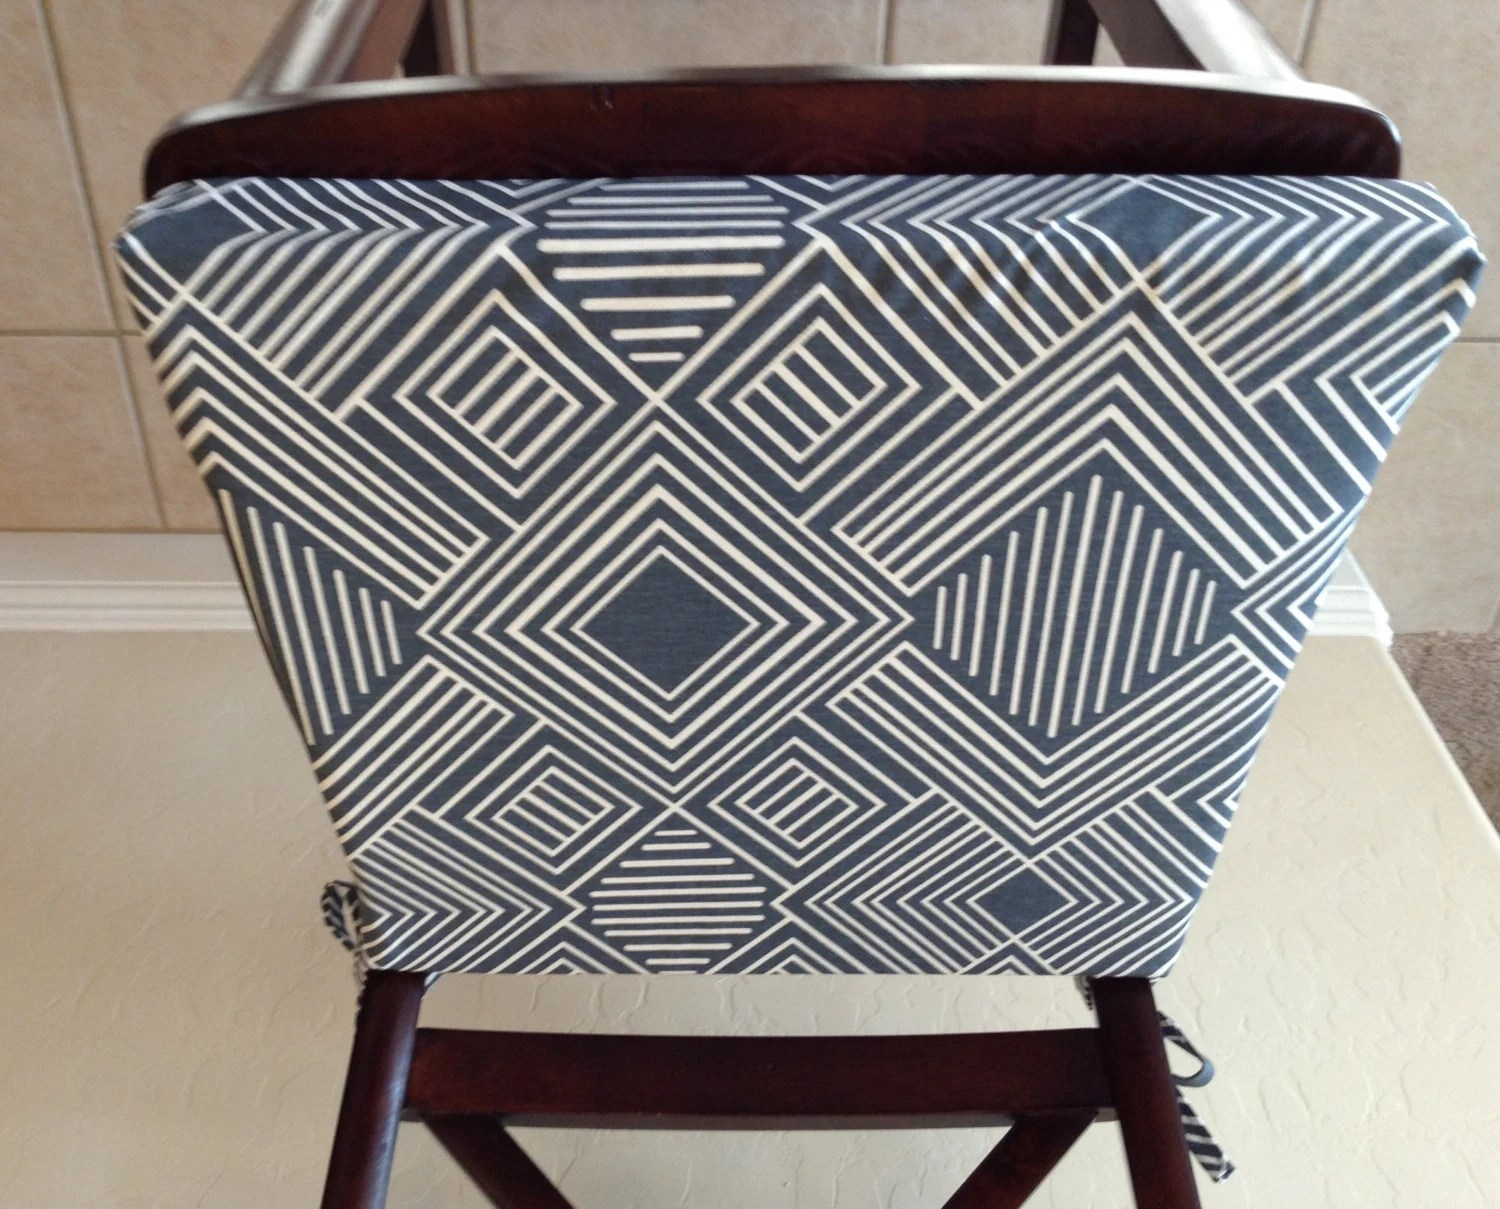 Chair Pad Covers Geometric Print Seat Cushion Cover Kitchen Chair Pad